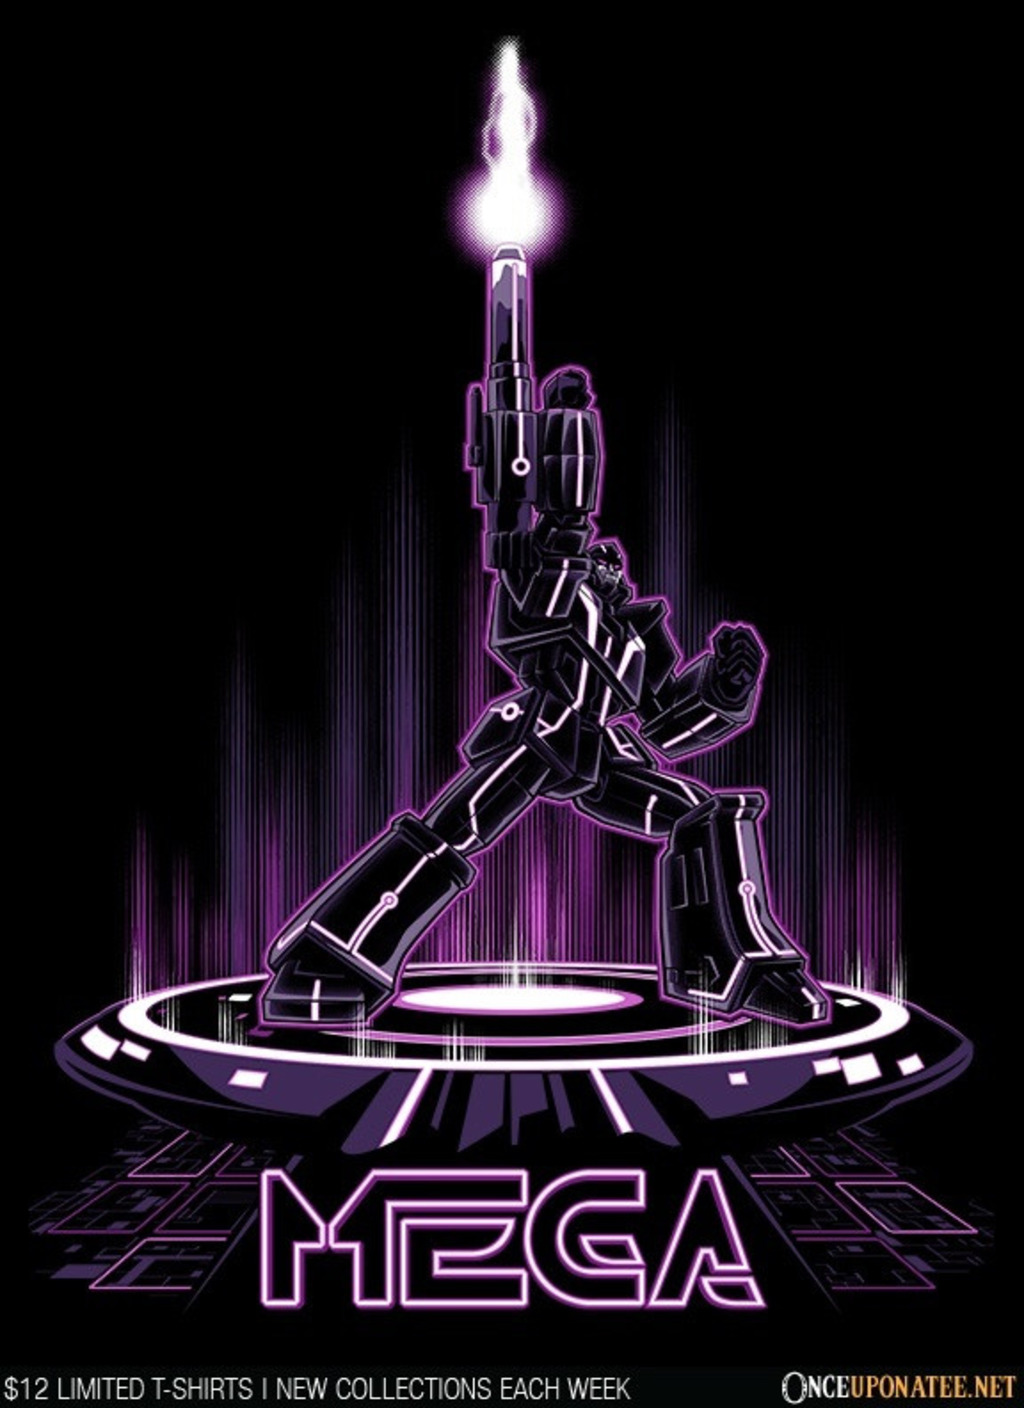 Once Upon a Tee: Tron Mega